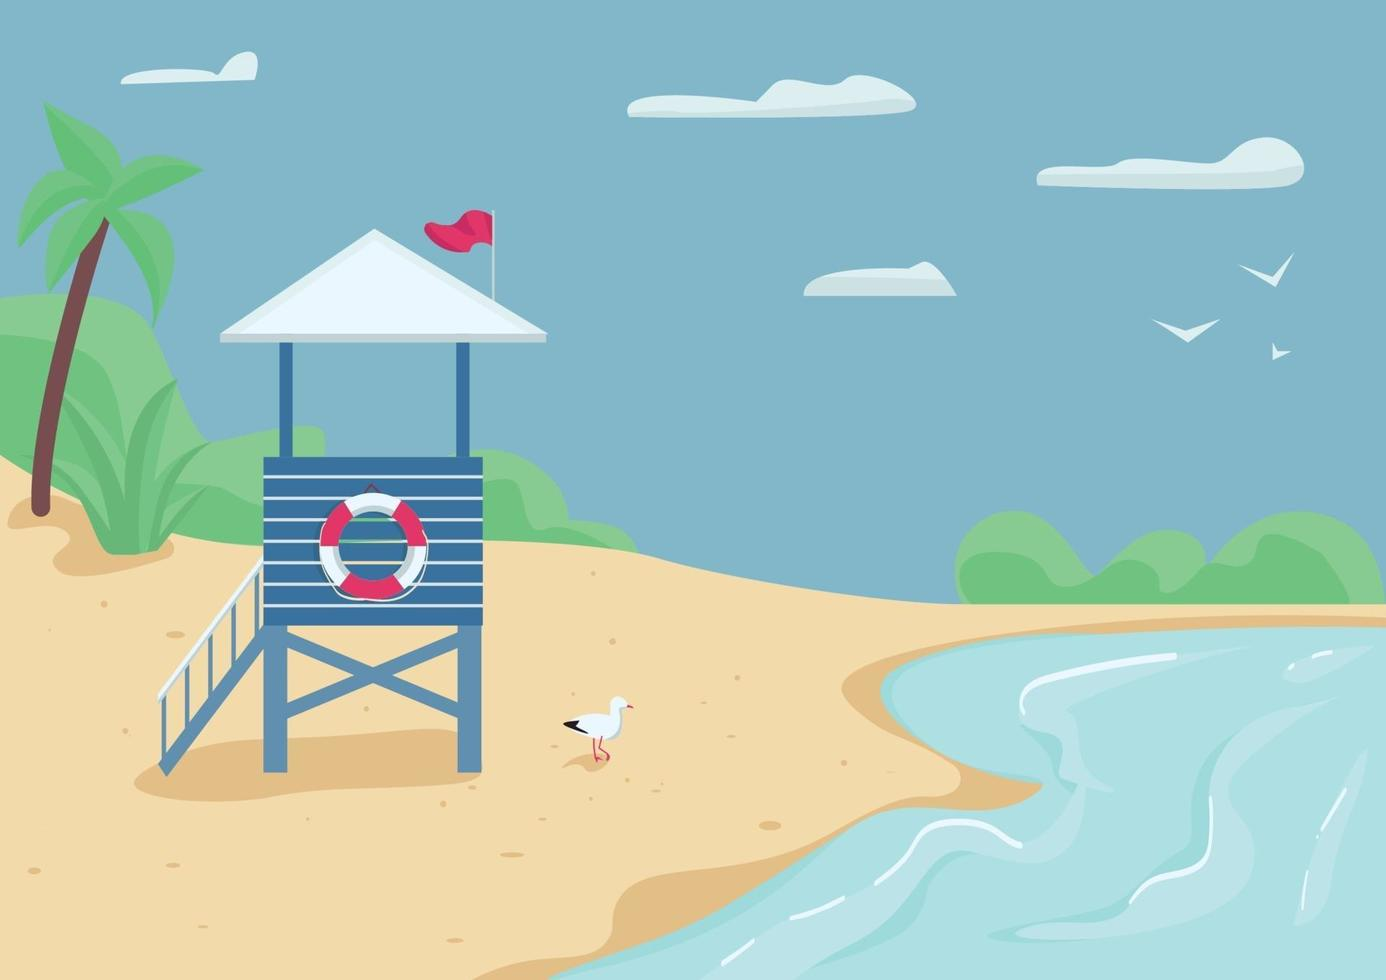 Lifeguard tower on sand beach flat color vector illustration. Rescuer building, swimming safety. Life guard stand on seashore 2D cartoon landscape with water and blue sky on background